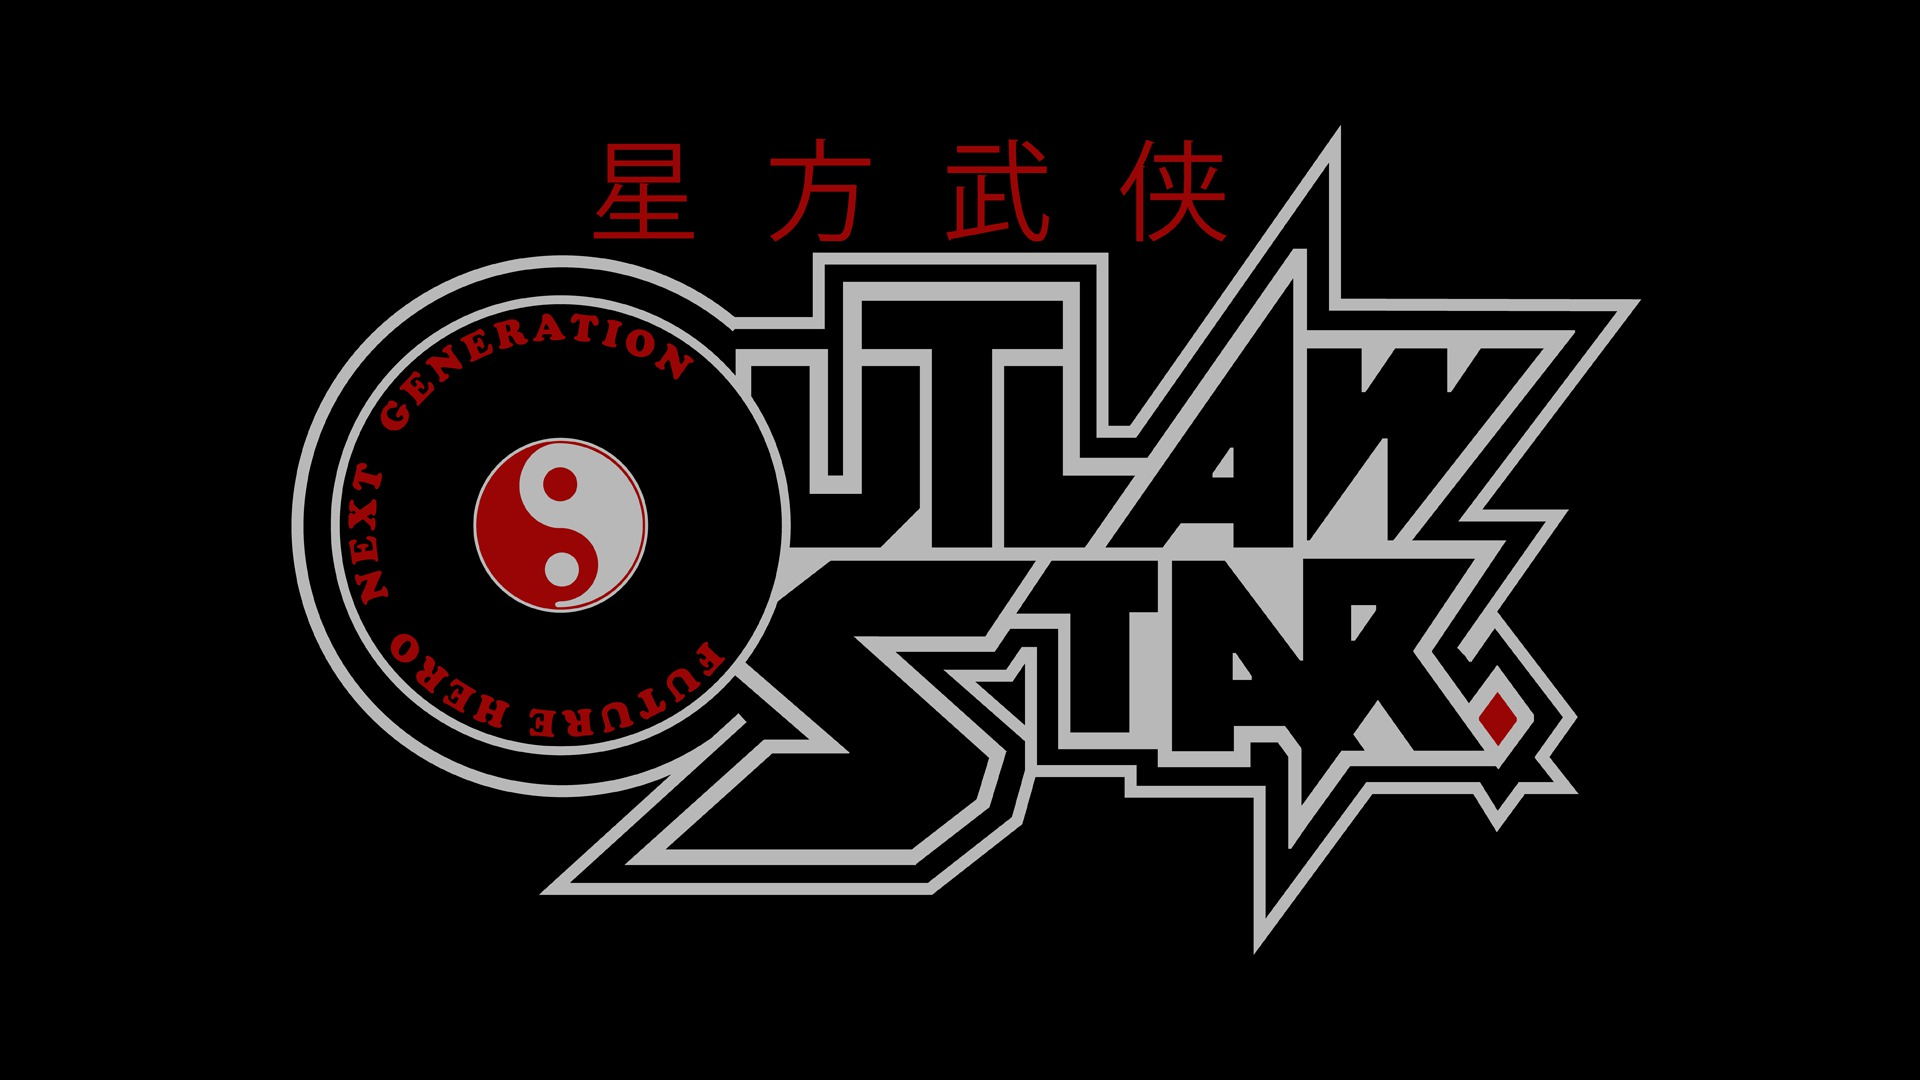 Western gunslinger royalty free stock photography image 31717397 - Outlaw Star Wallpaper Wallpapersafari